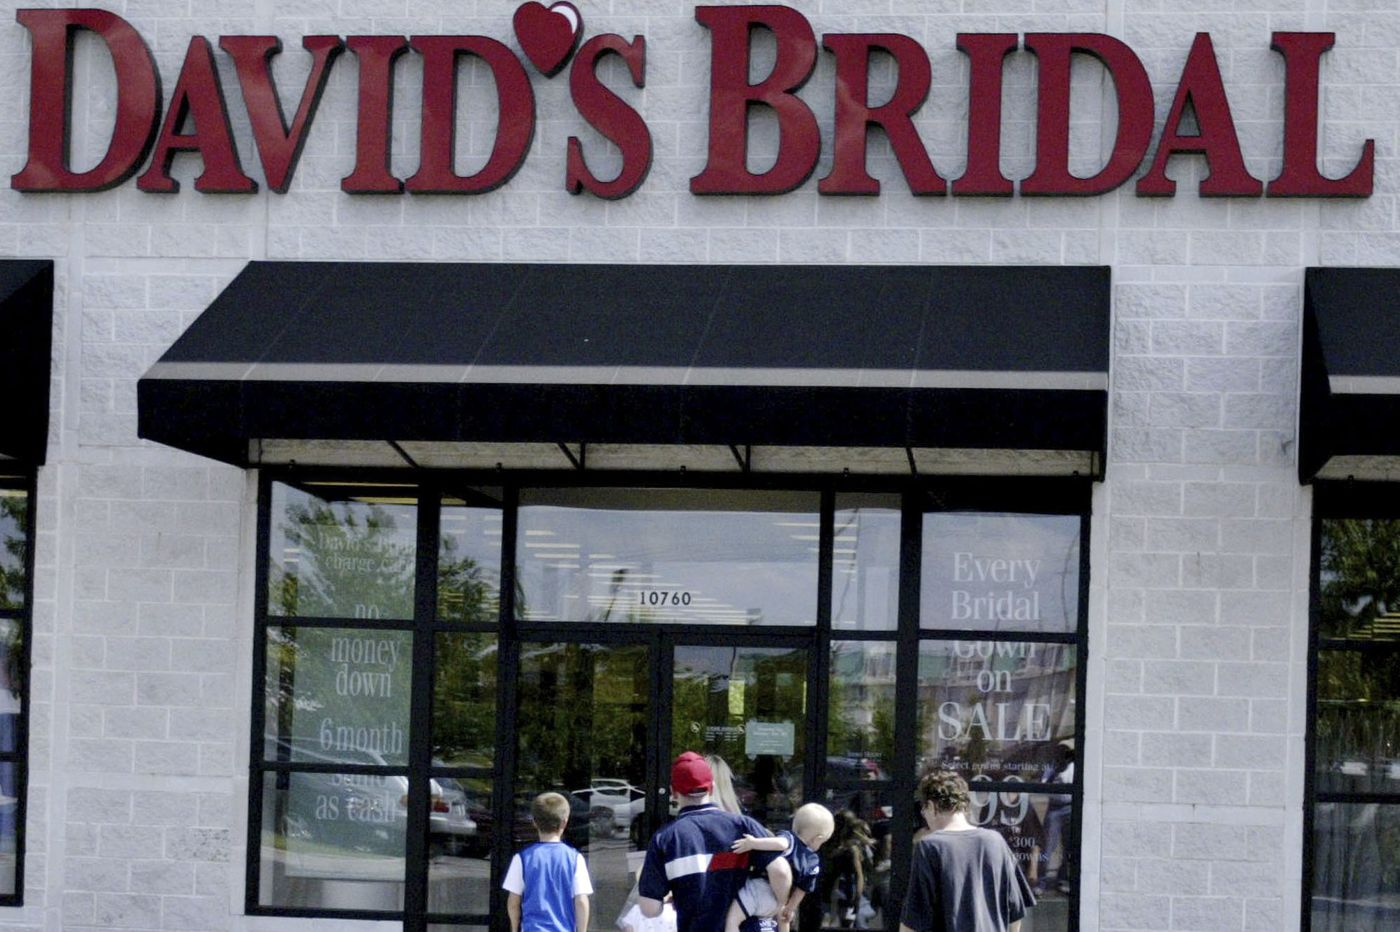 Davids Bridal Says Creditors Will Keep Stores Open Dresses Flowing In Bankruptcy